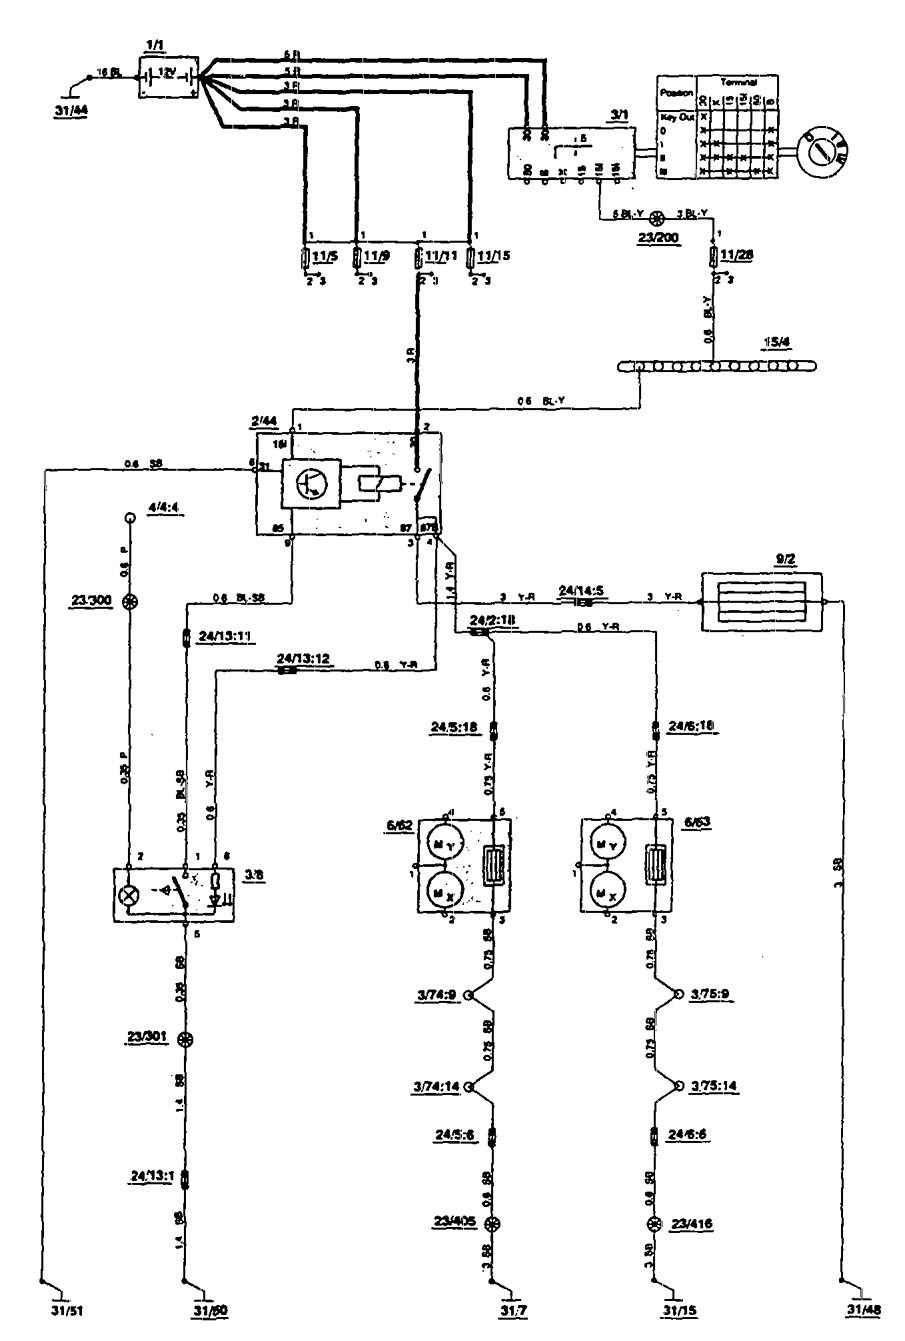 Heated Mirror Wiring Diagram Trusted Diagrams 09 Silverado Volvo 850 1993 Carknowledge 55 Chevy Ignition